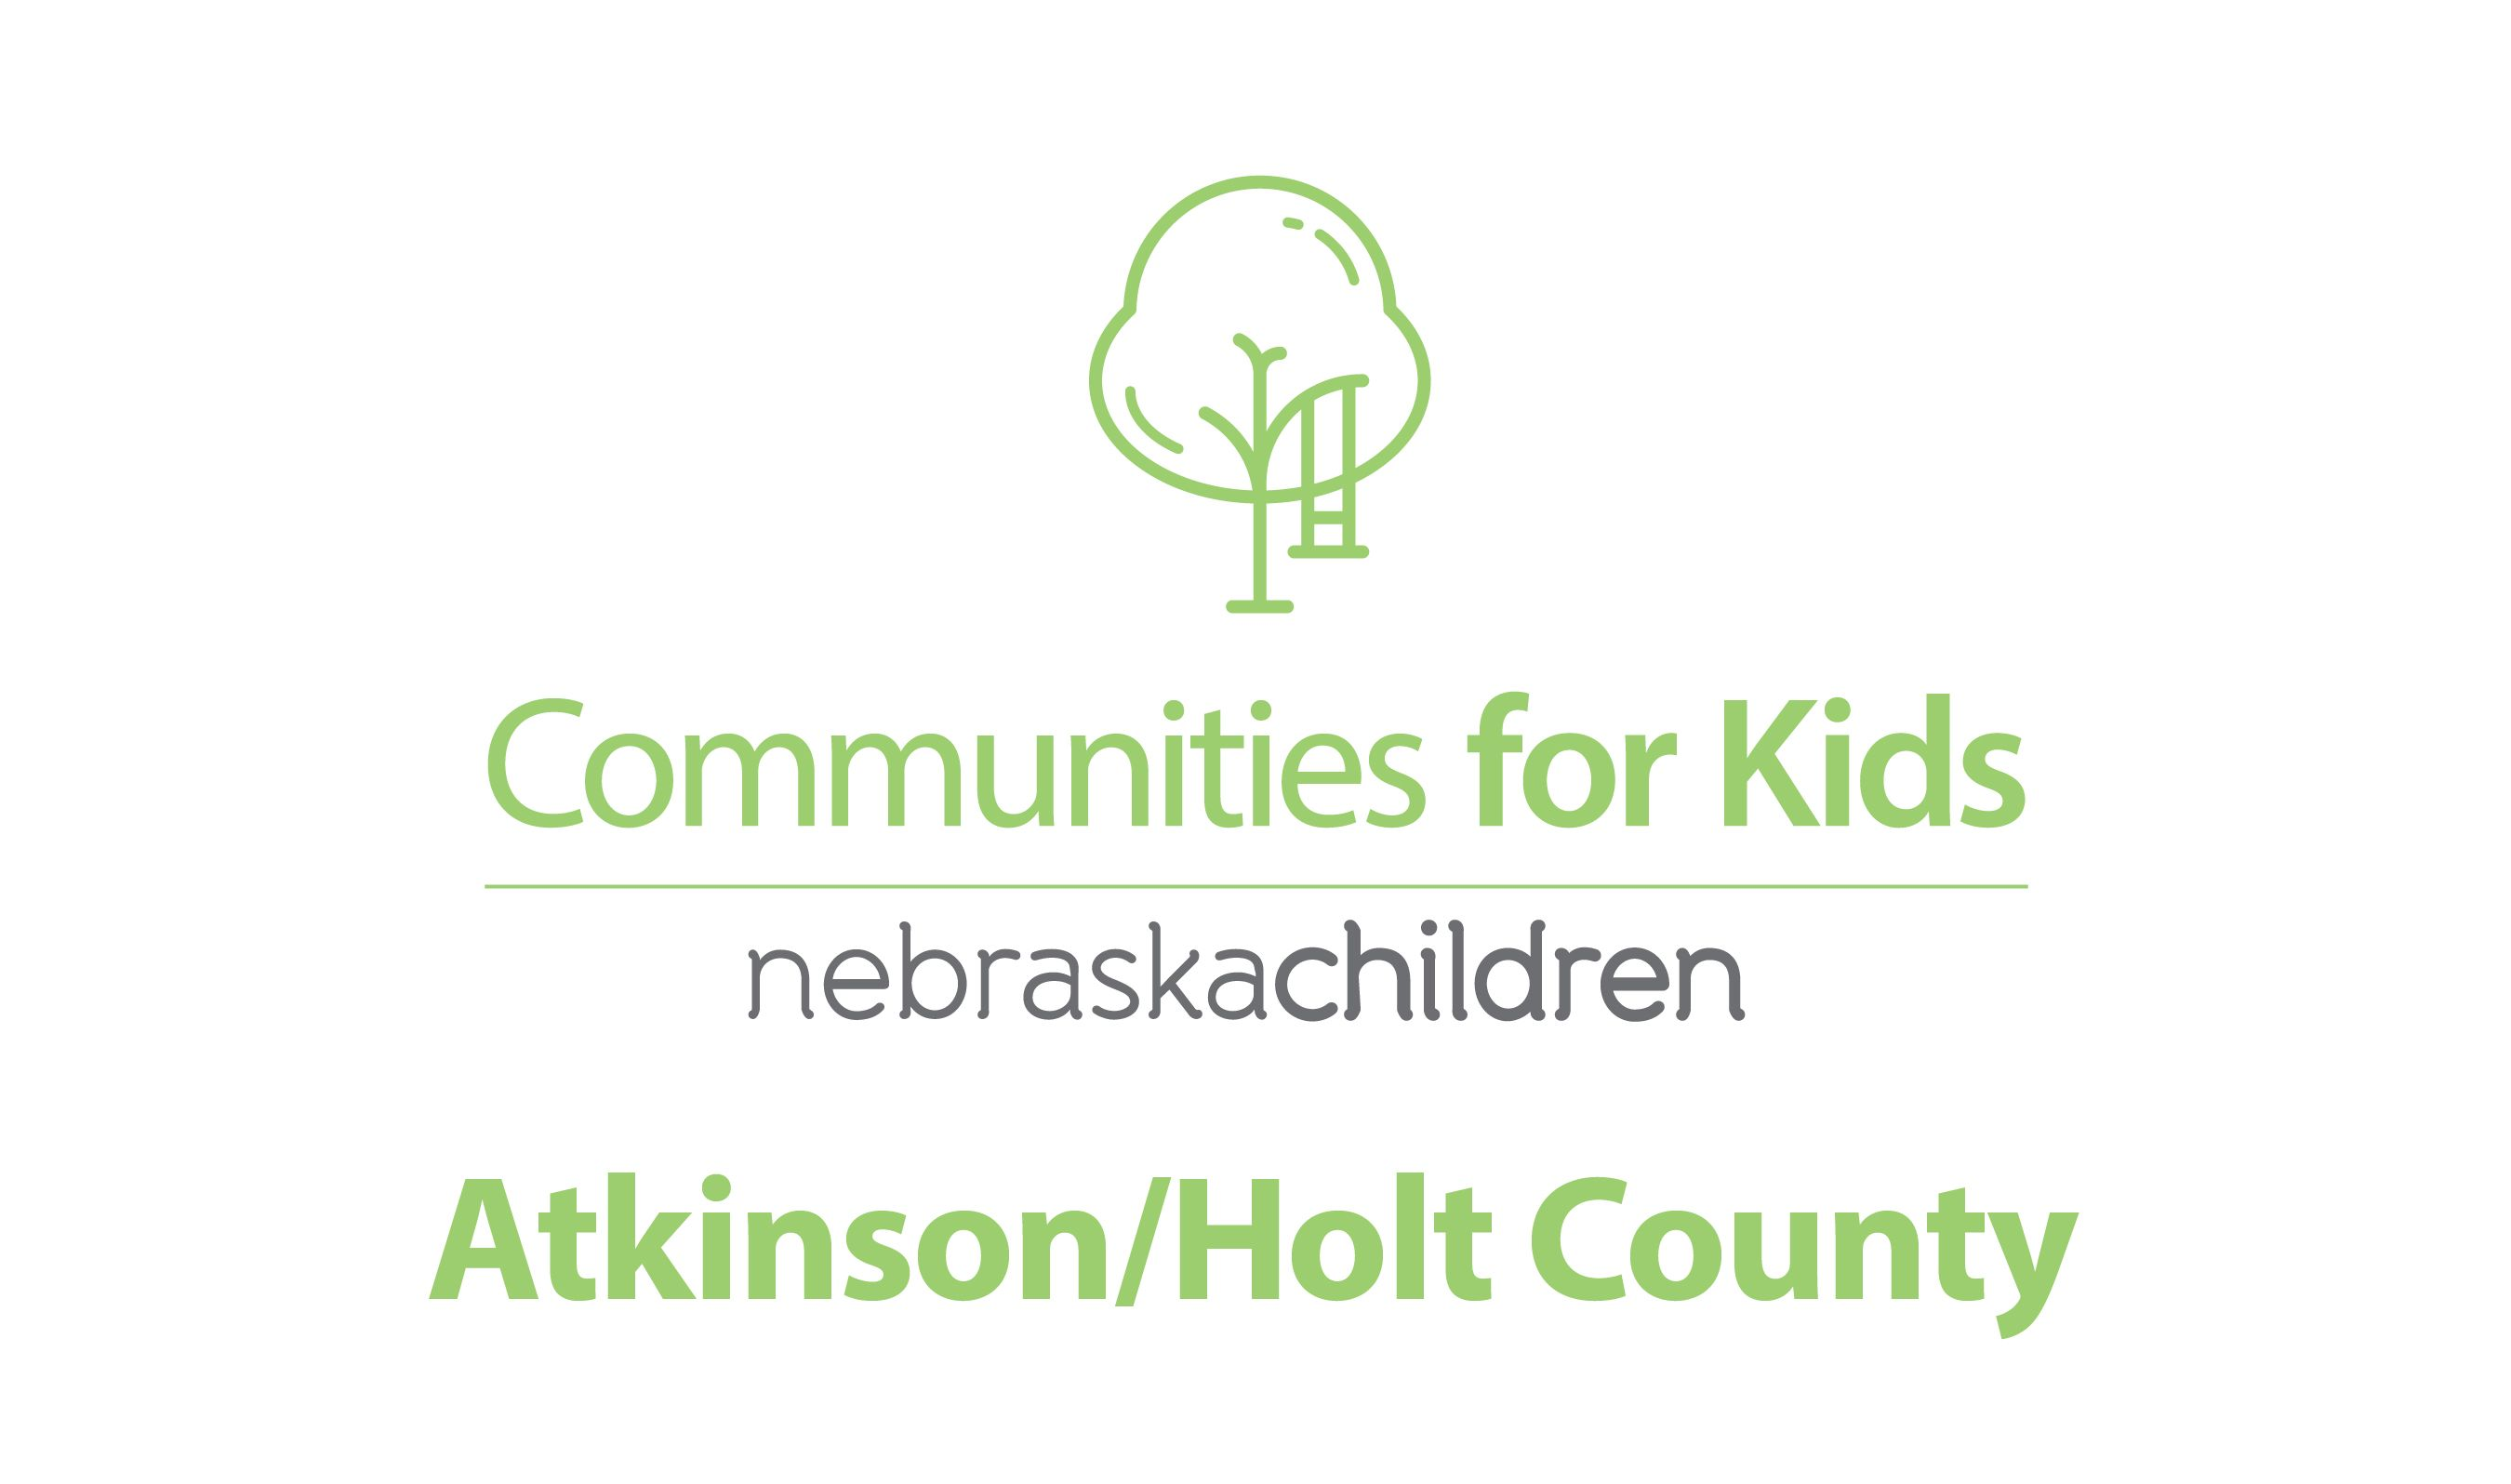 Atkinson/Holt County C4K/C4K+ Community Work Plan